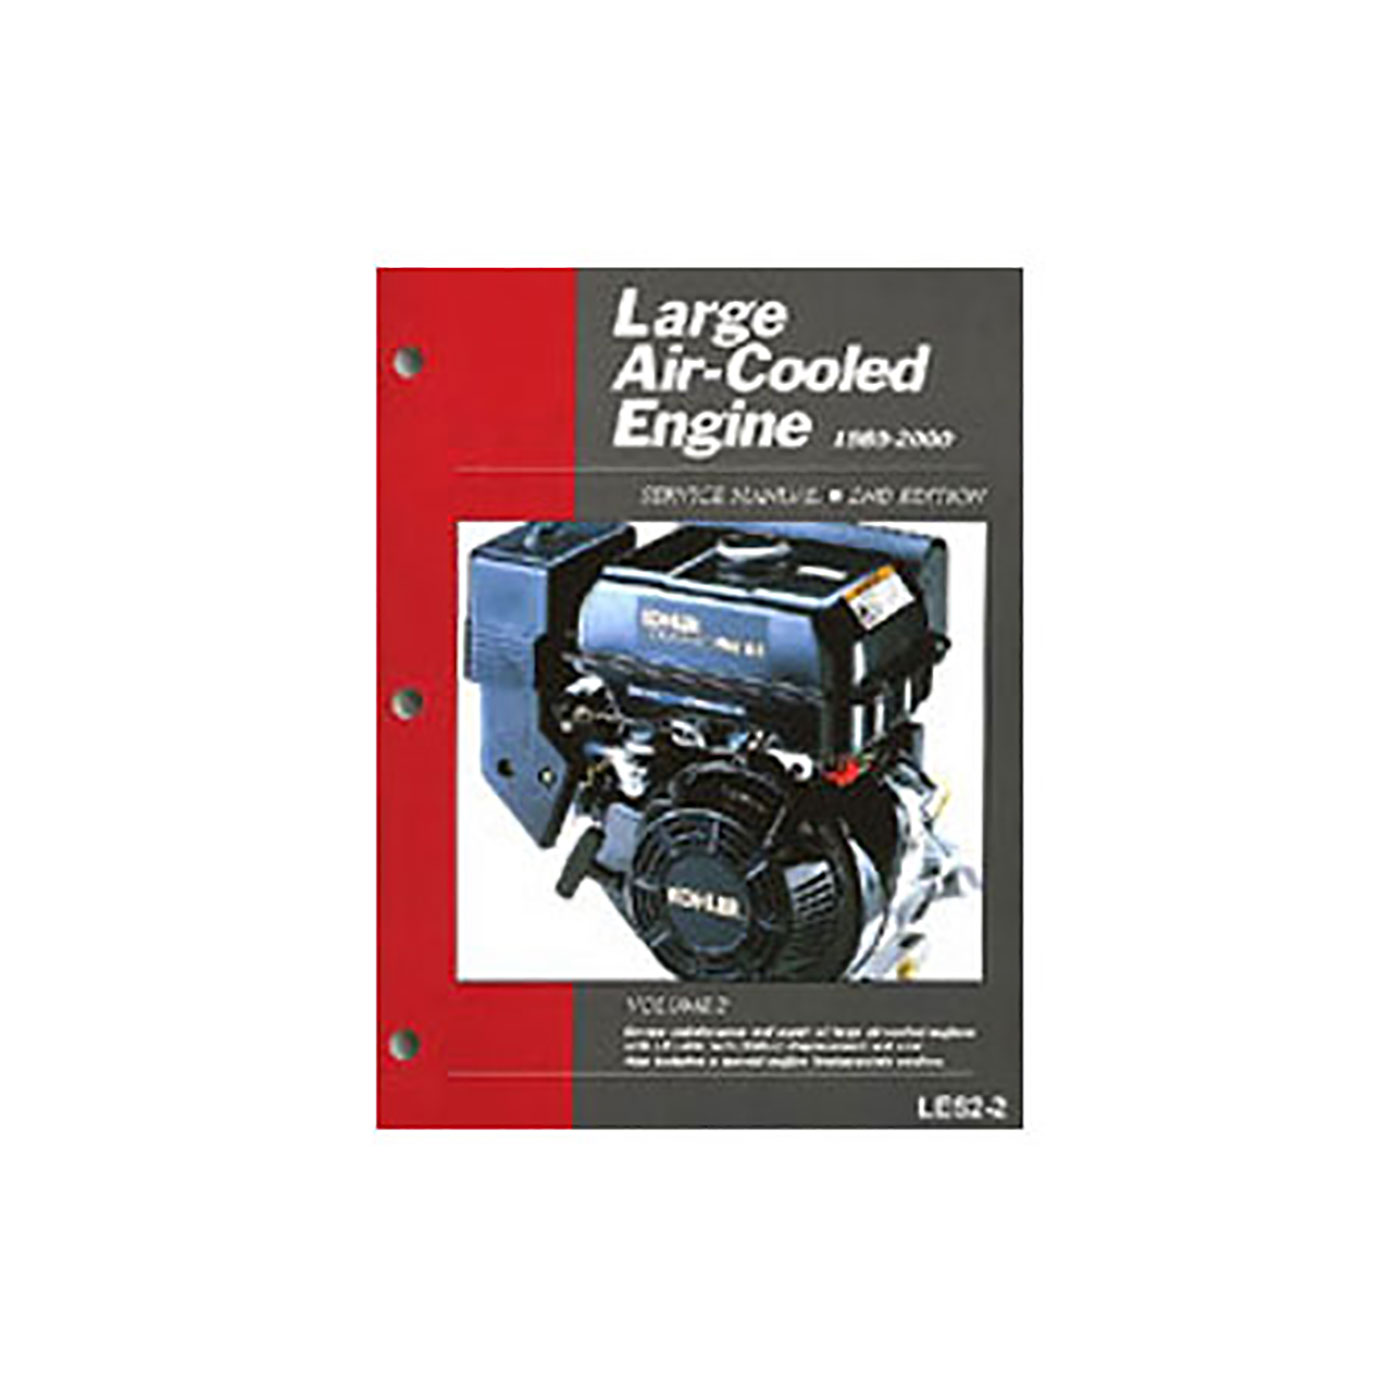 Large Air-Cooled Engine (1989-2000)